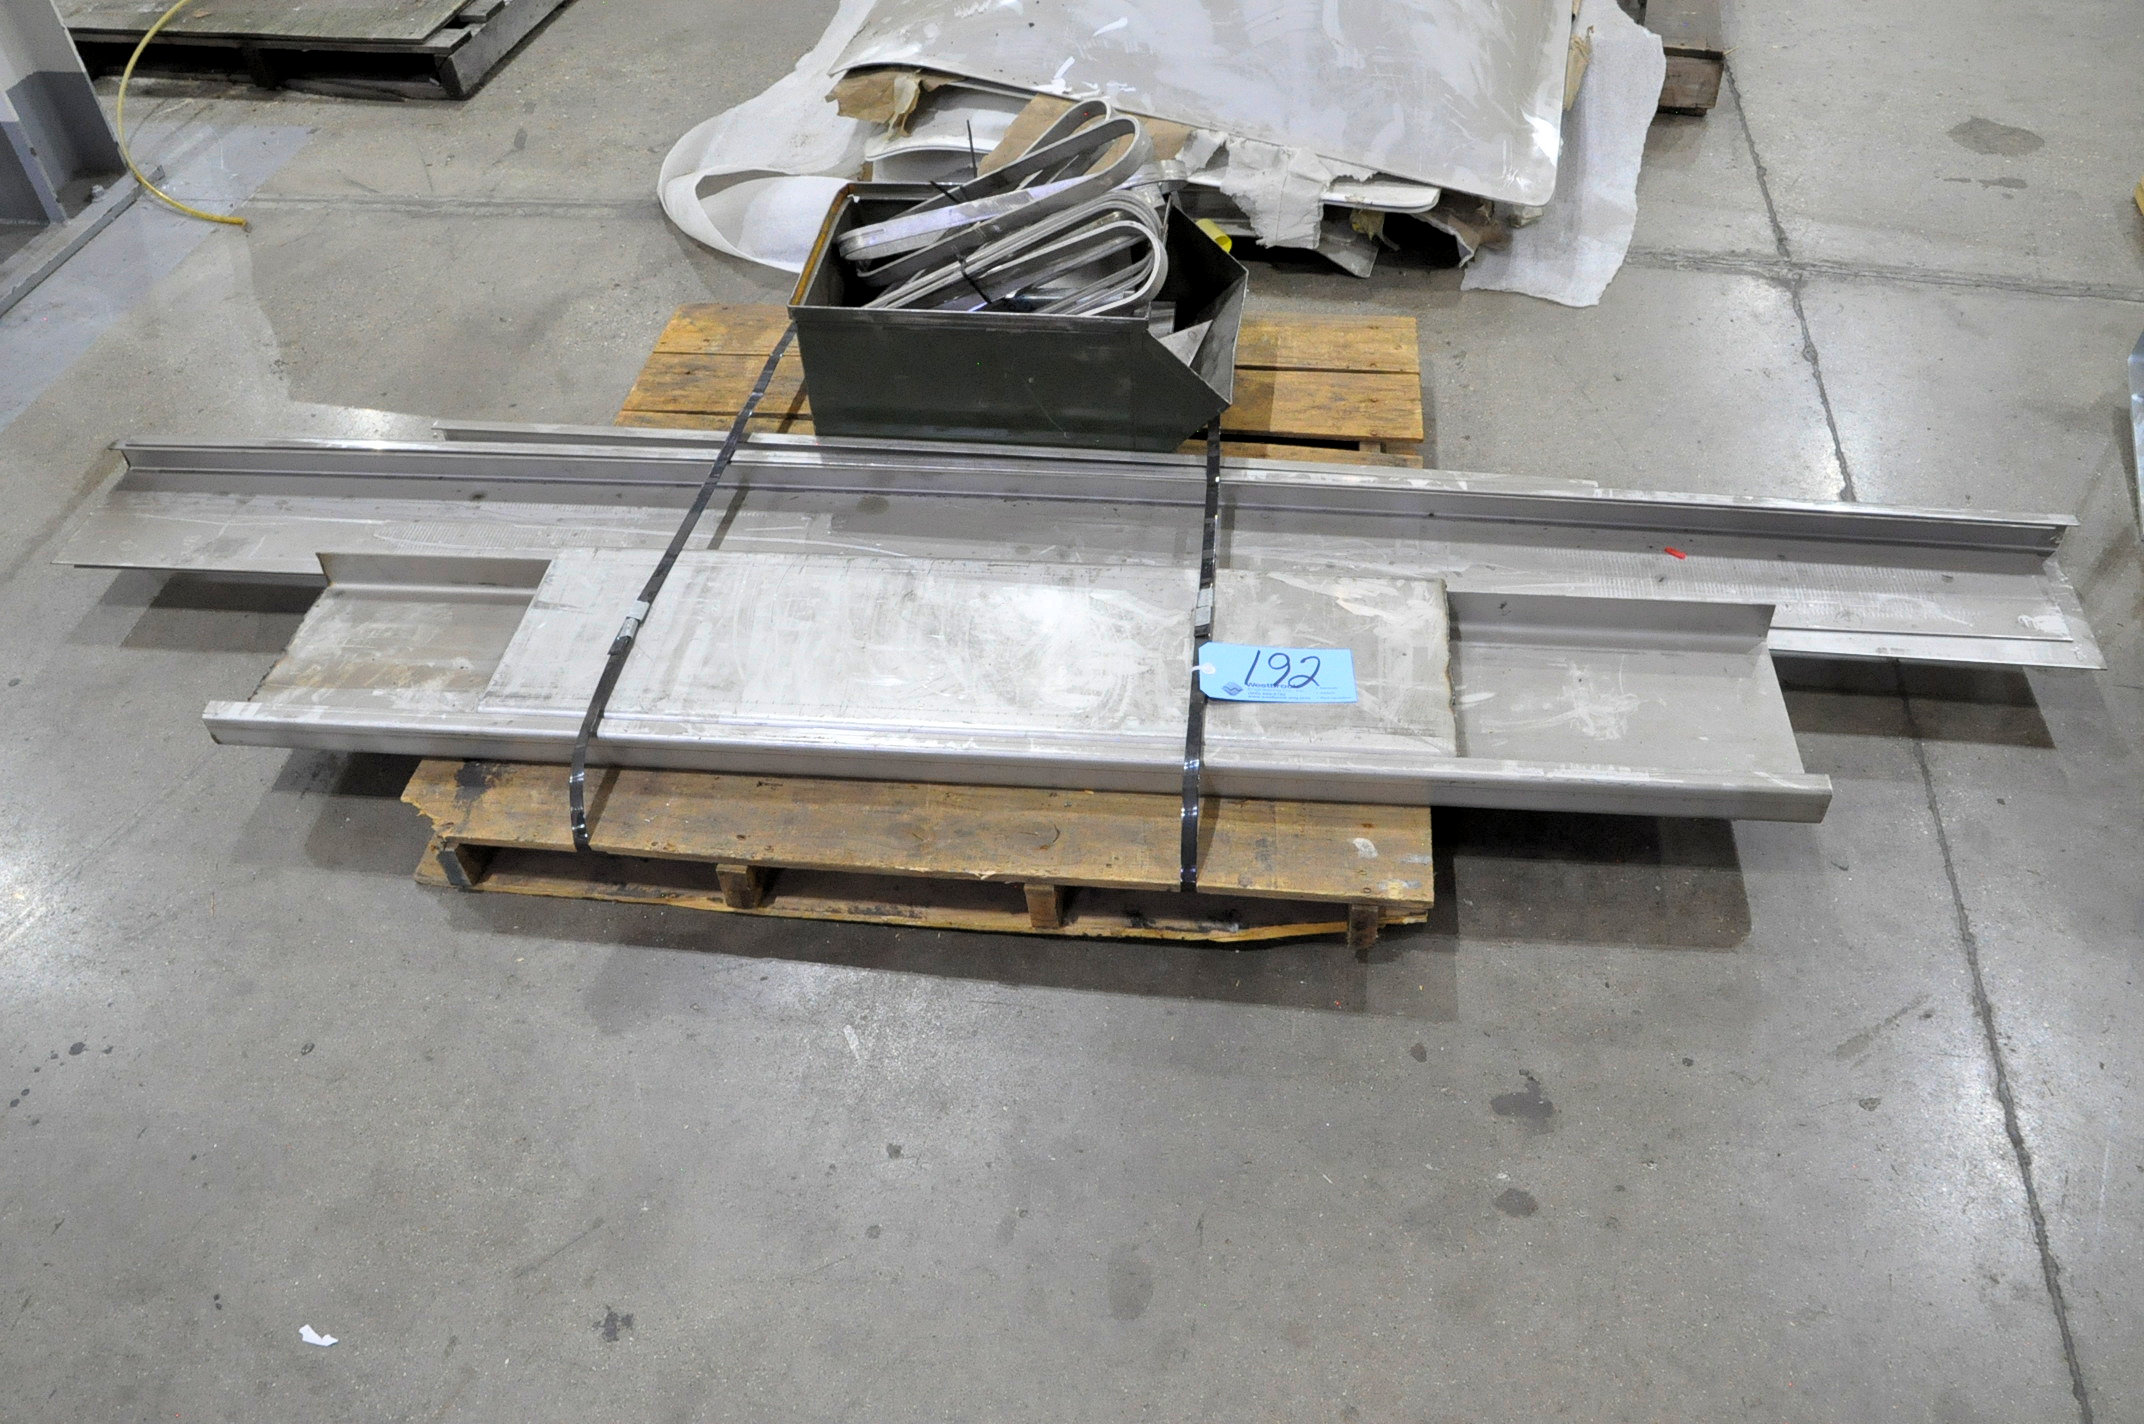 Lot-In Process Track Parts on (1) Pallet